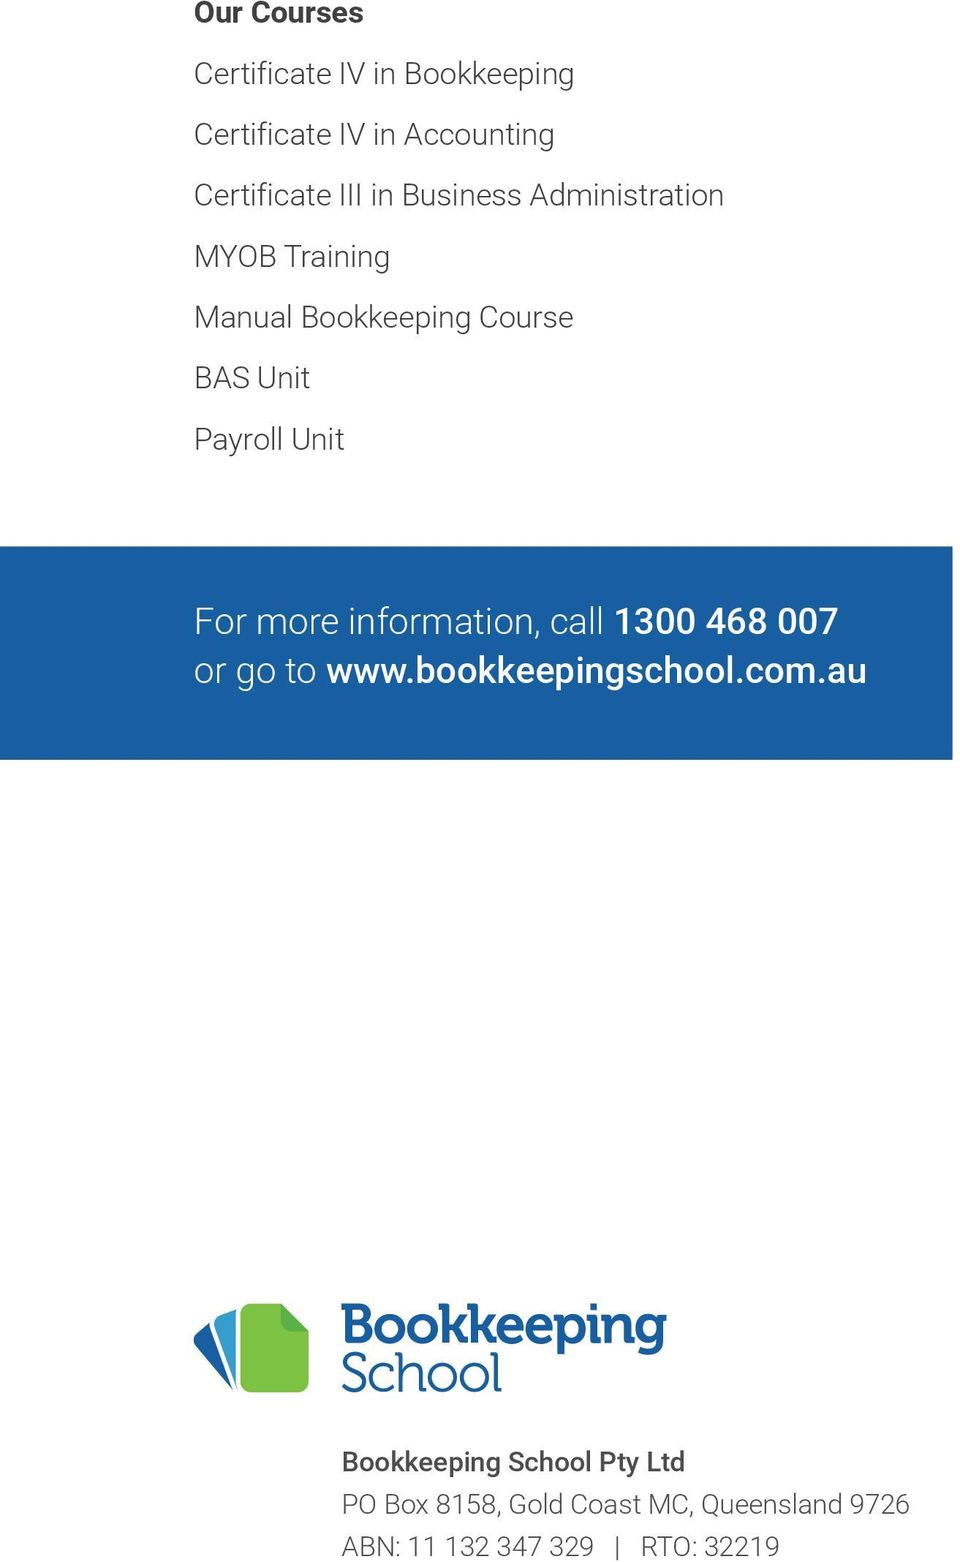 For more information, call 1300 468 007 or go to www.bookkeepingschool.com.